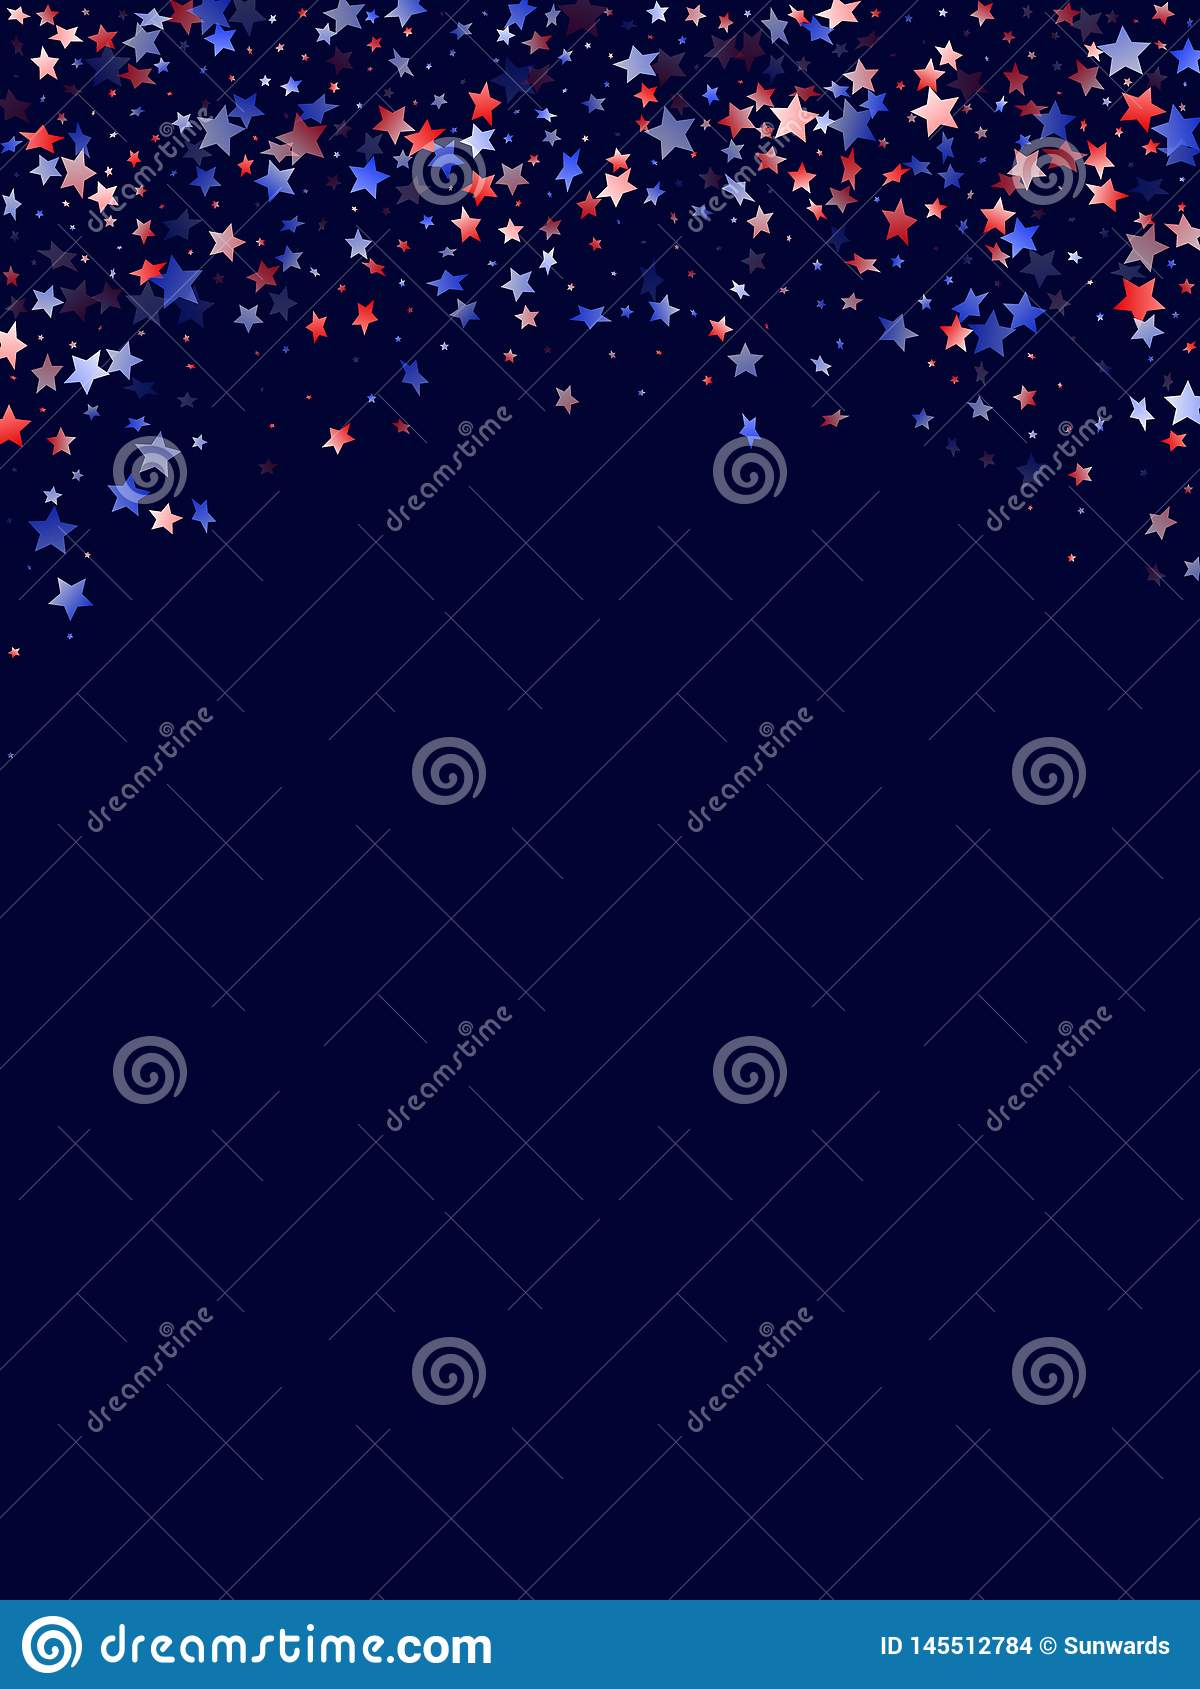 Patriotic Christmas Background.Flying Red Blue White Star Sparkles Vector American